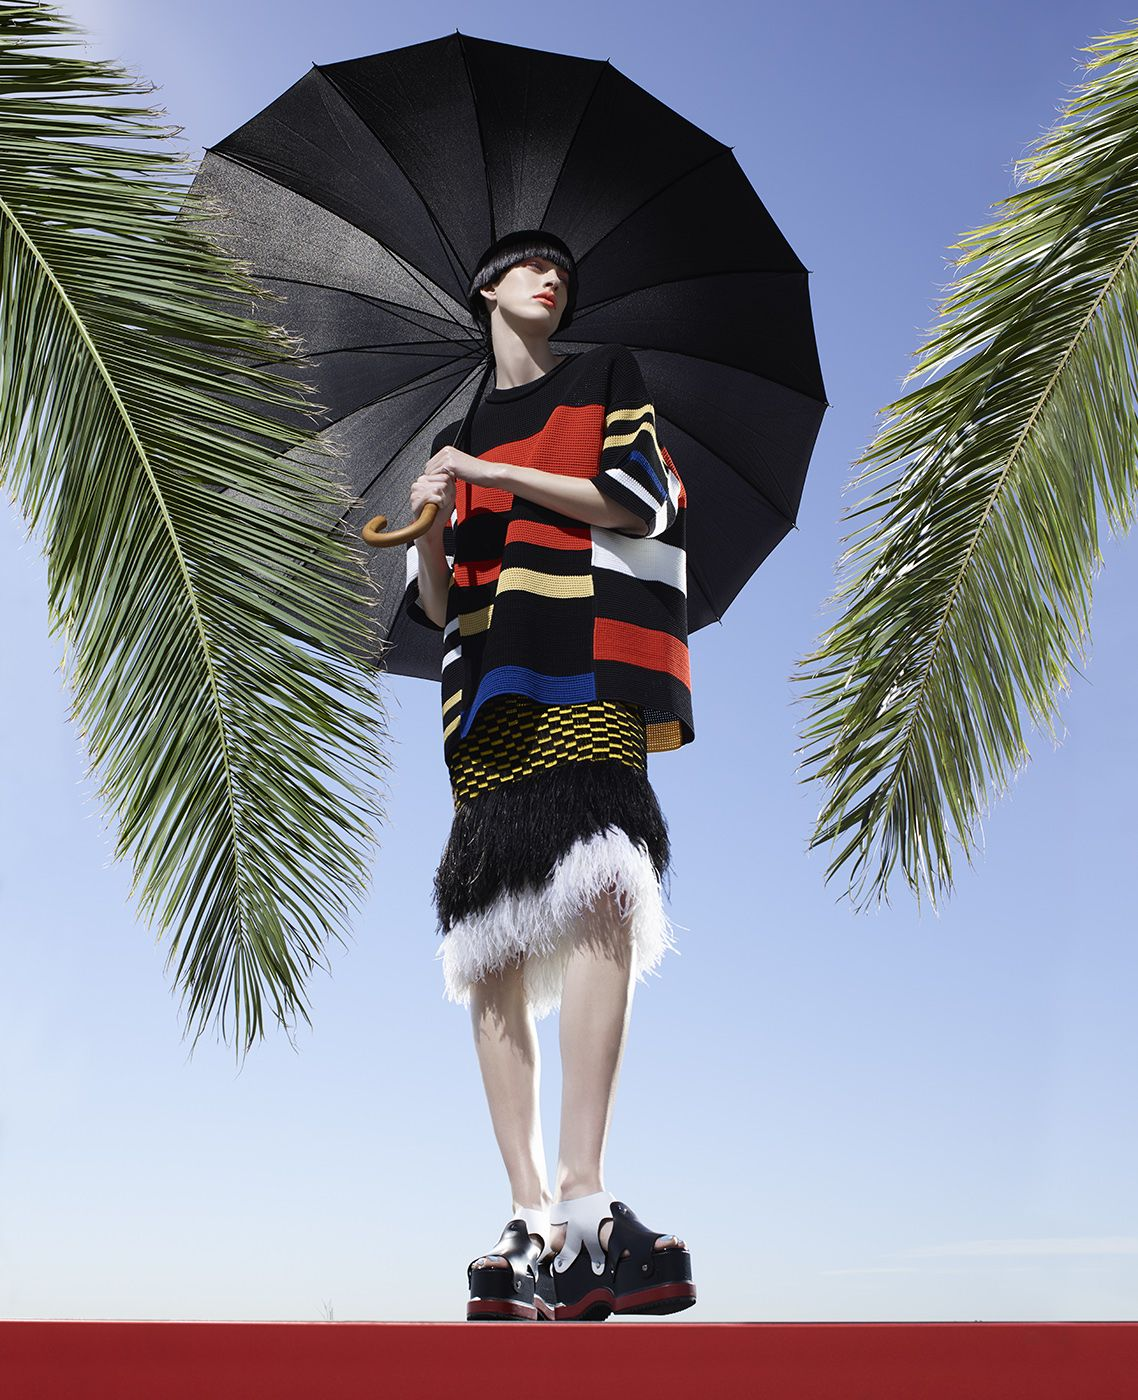 Fashion (with Palm Fronds), Los Angeles, 2016, 40 x 32 1/2 Inches, Archival Pigment Print, Edition of 5